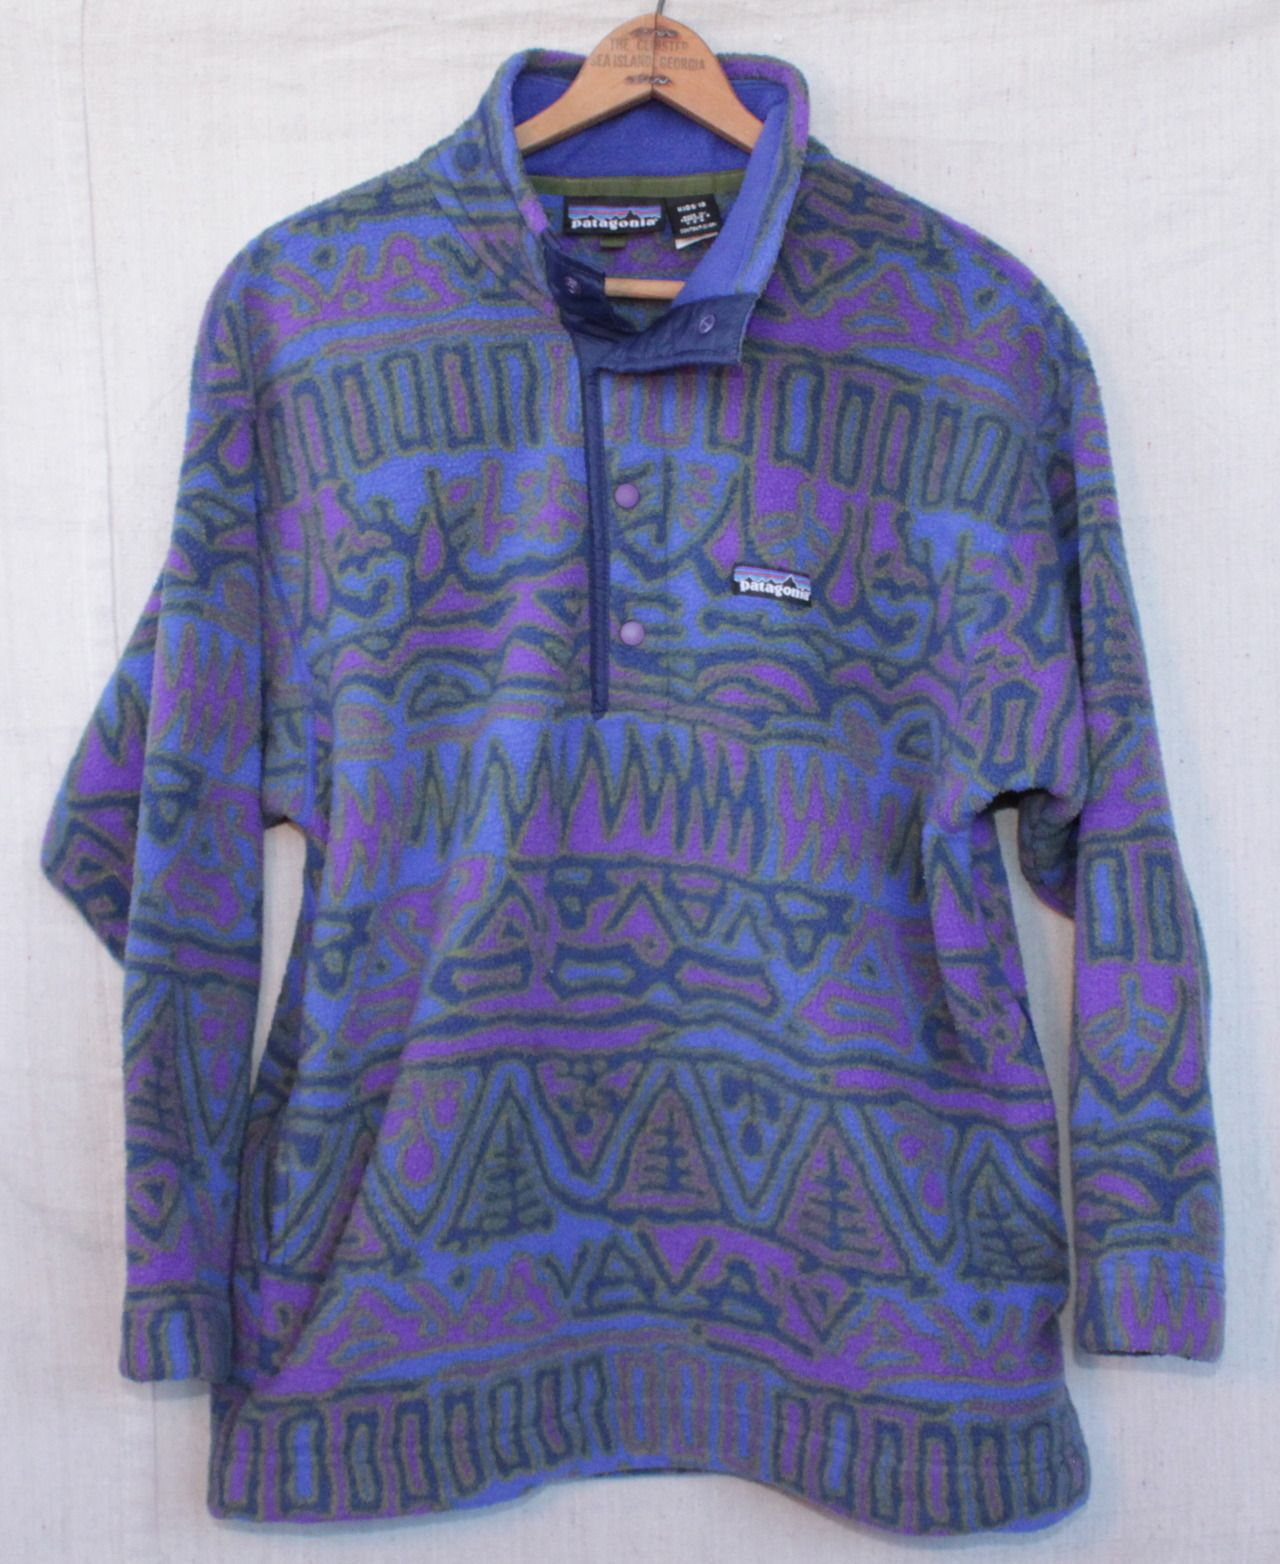 Patterned Patagonia Fleece Custom Design Ideas